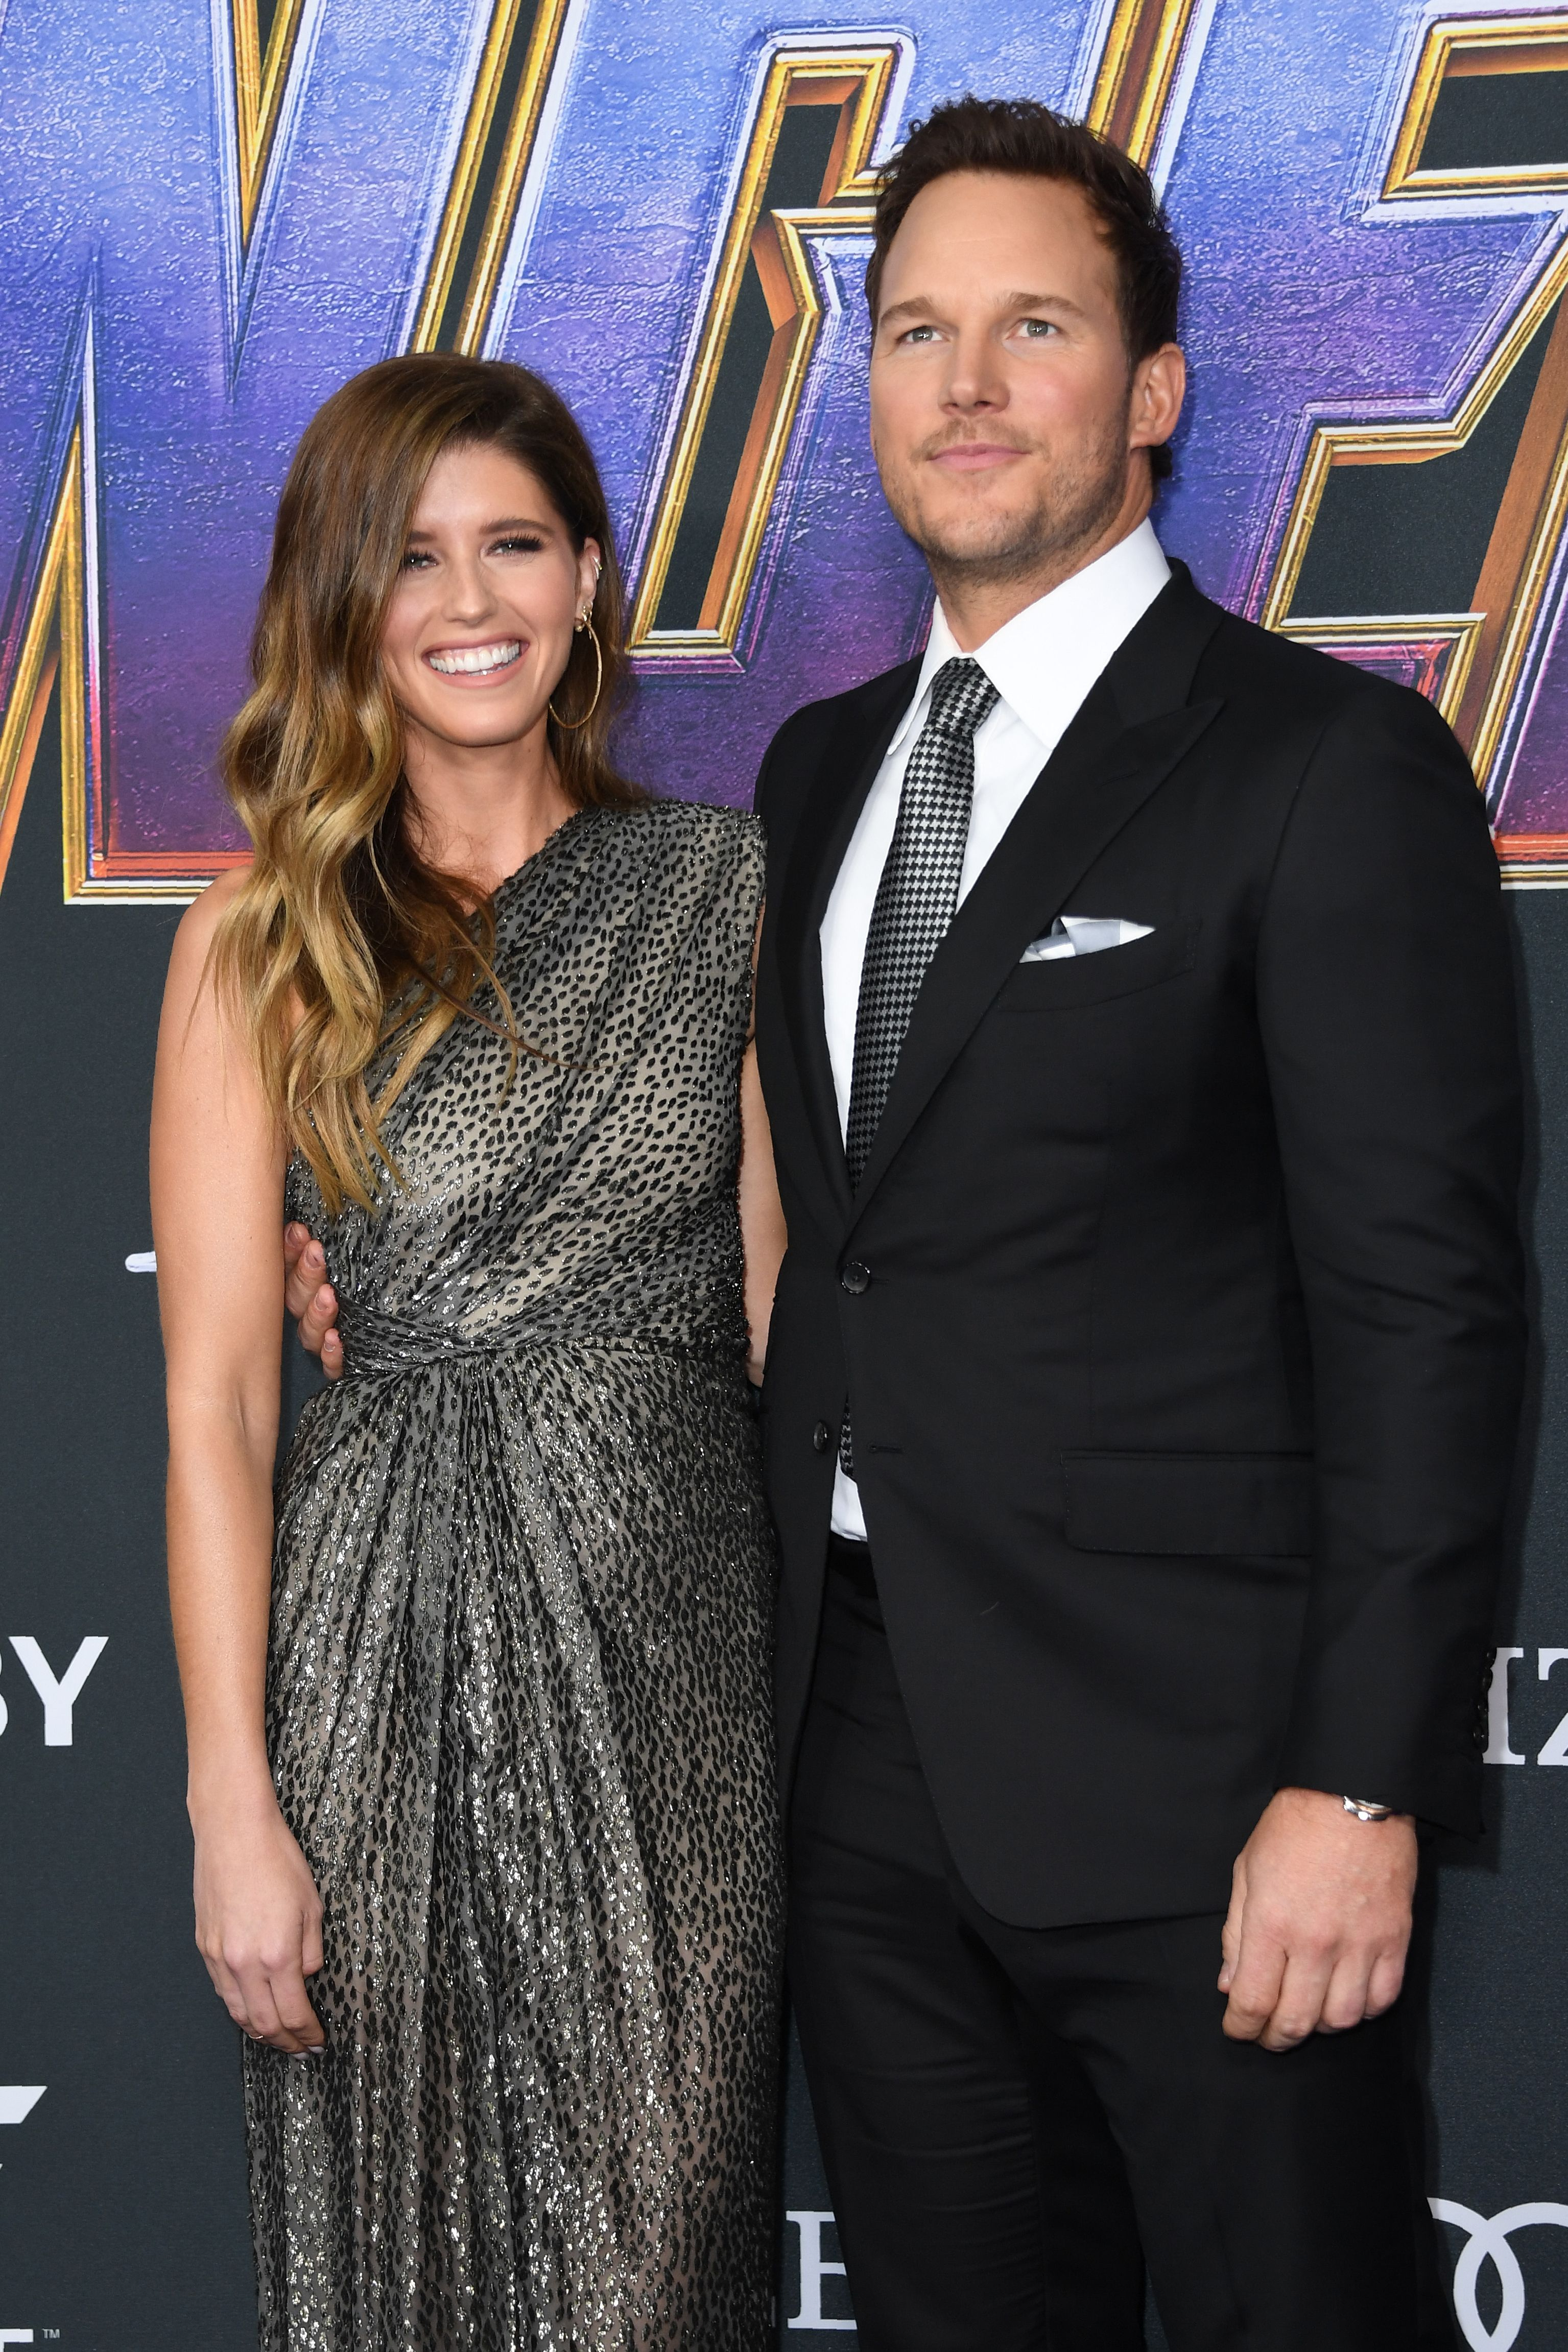 Chris Pratt and Katherine Schwarzenegger Already Have a Timeline for Kids: Report